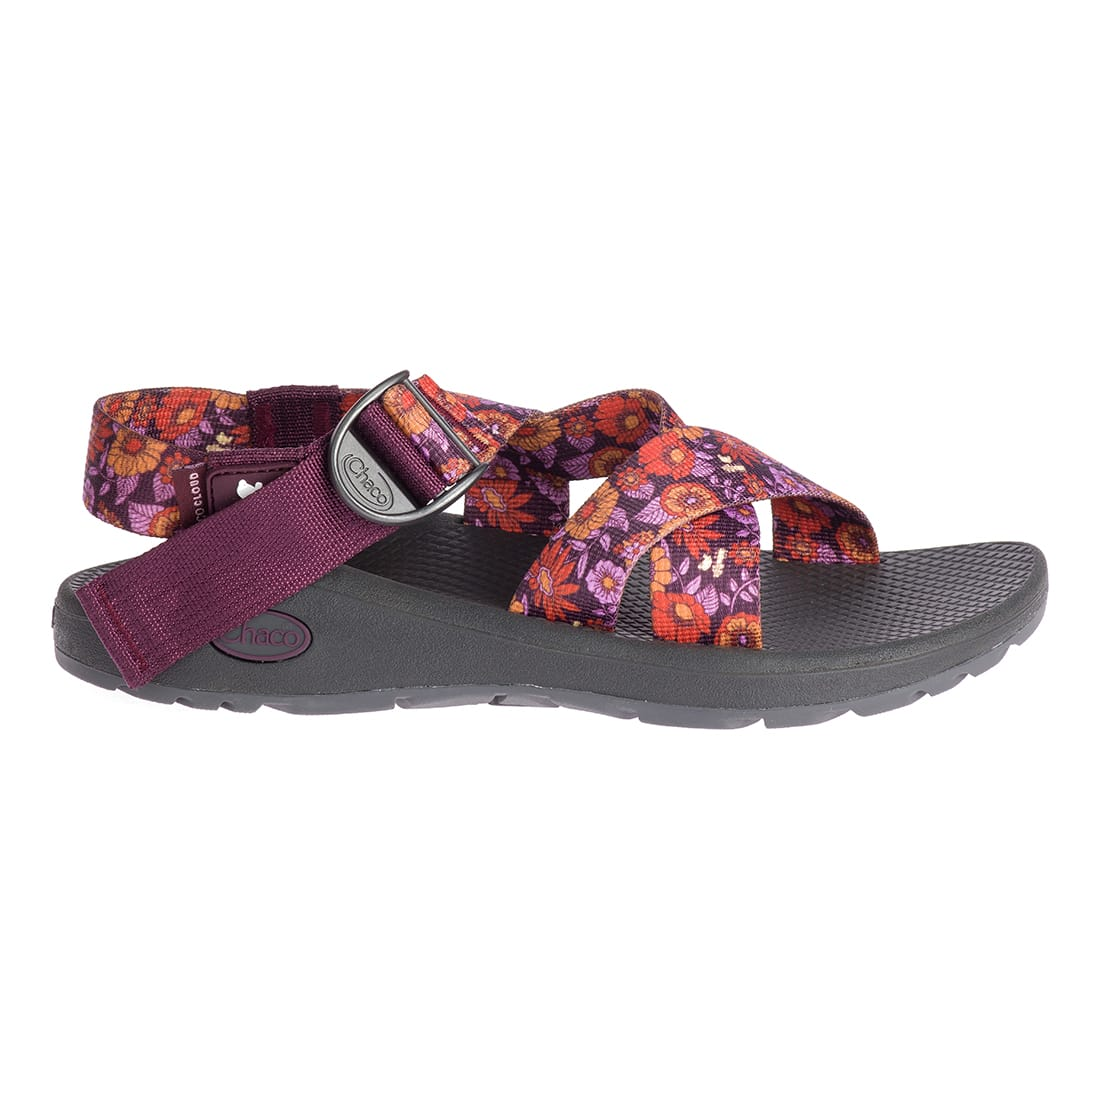 a1747e106758 Women s Woodstock Mega Z Cloud Sandal - Blossom Wine – Gazelle Sports